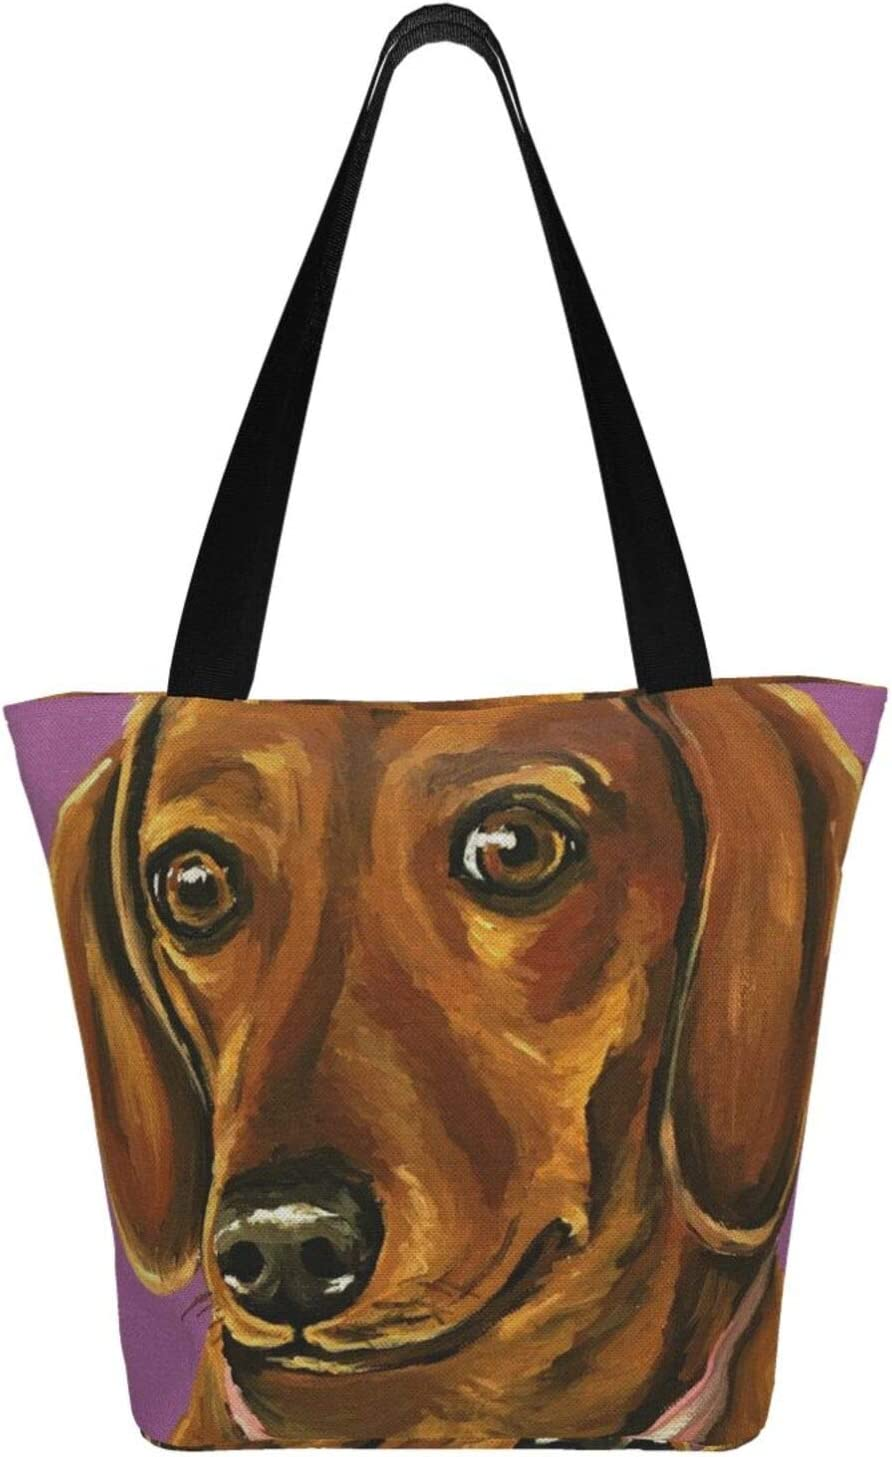 AKLID Watercolor Daschund Extra Large Water Resistant Canvas Tote Bag for Gym Beach Travel Reusable Grocery Shopping Portable Storage Handbags